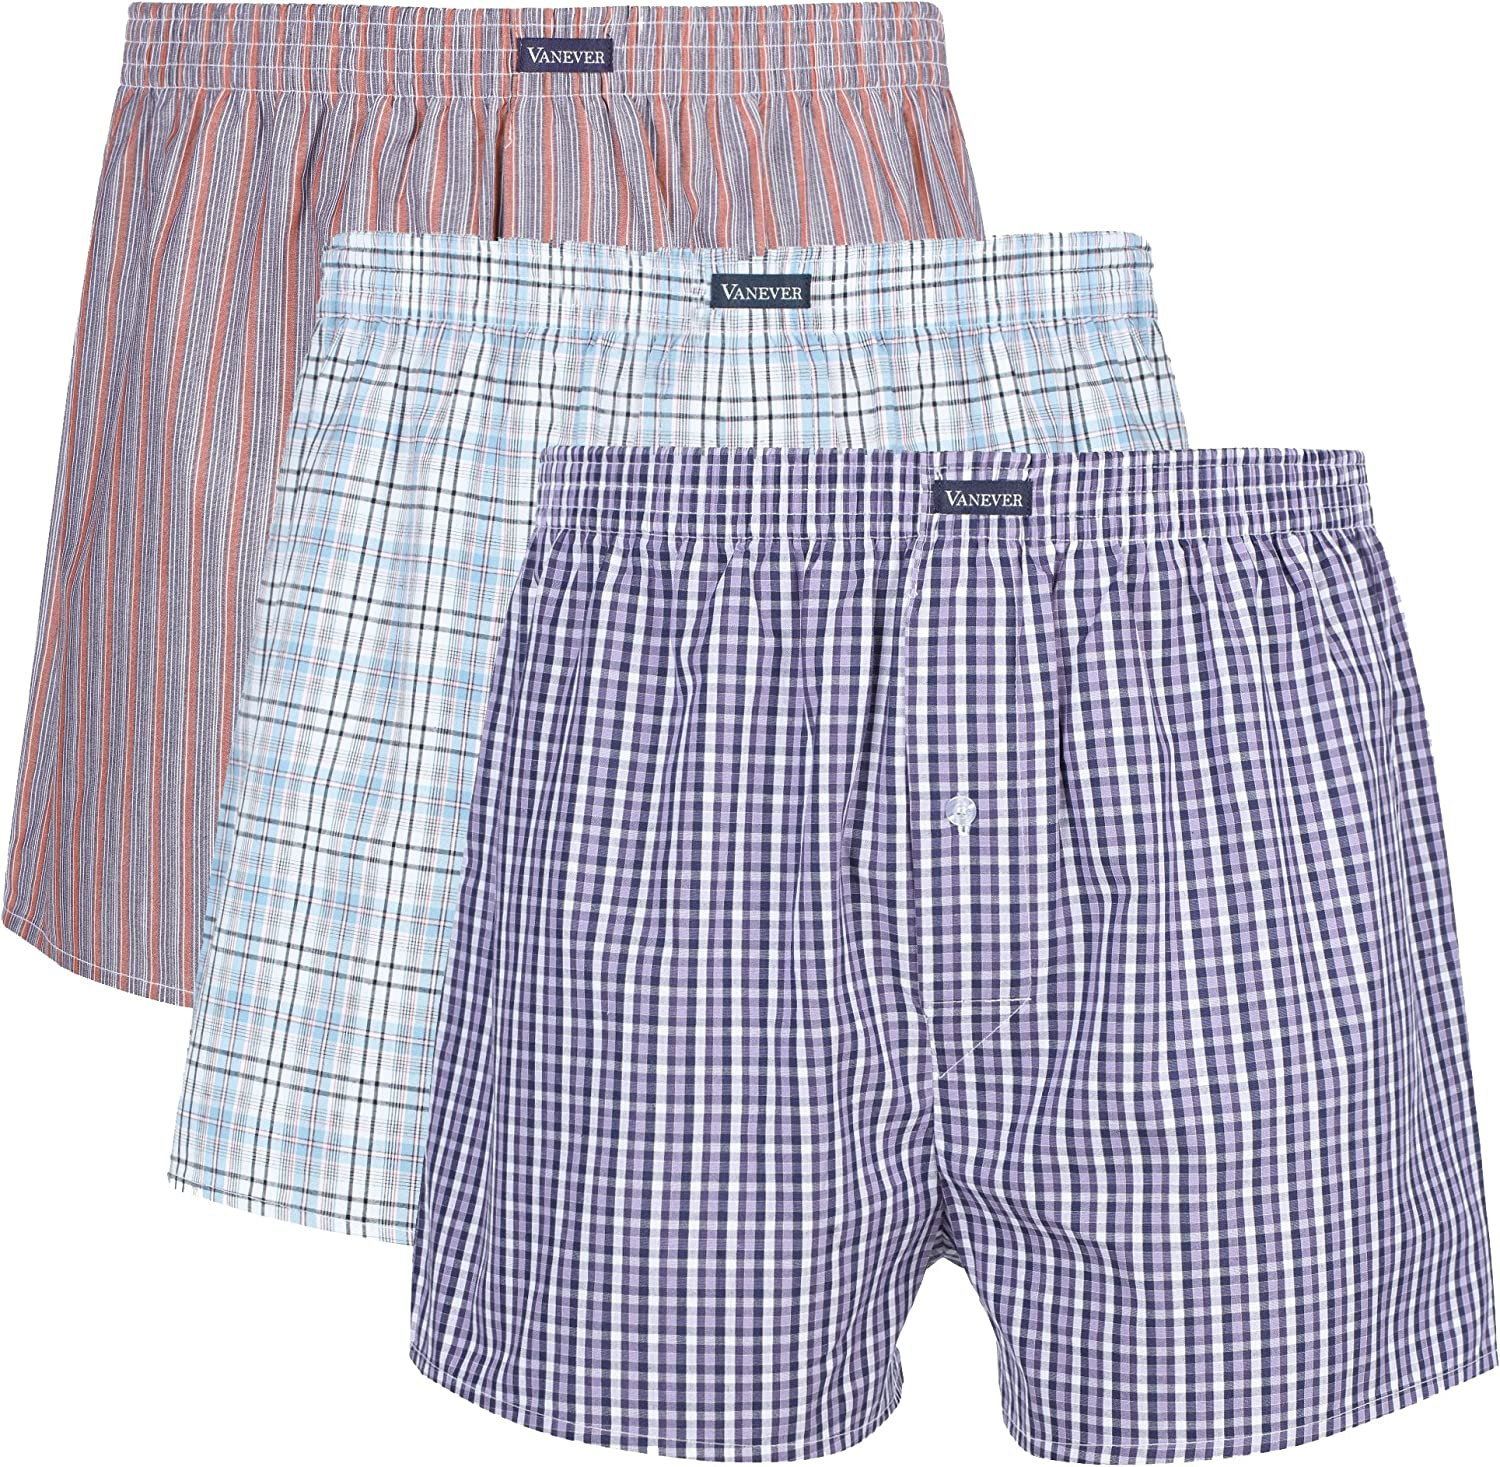 Vanever 3PK Limited price Men's Woven Boxers 100% Shorts Boxer Cotton Super popular specialty store Men for